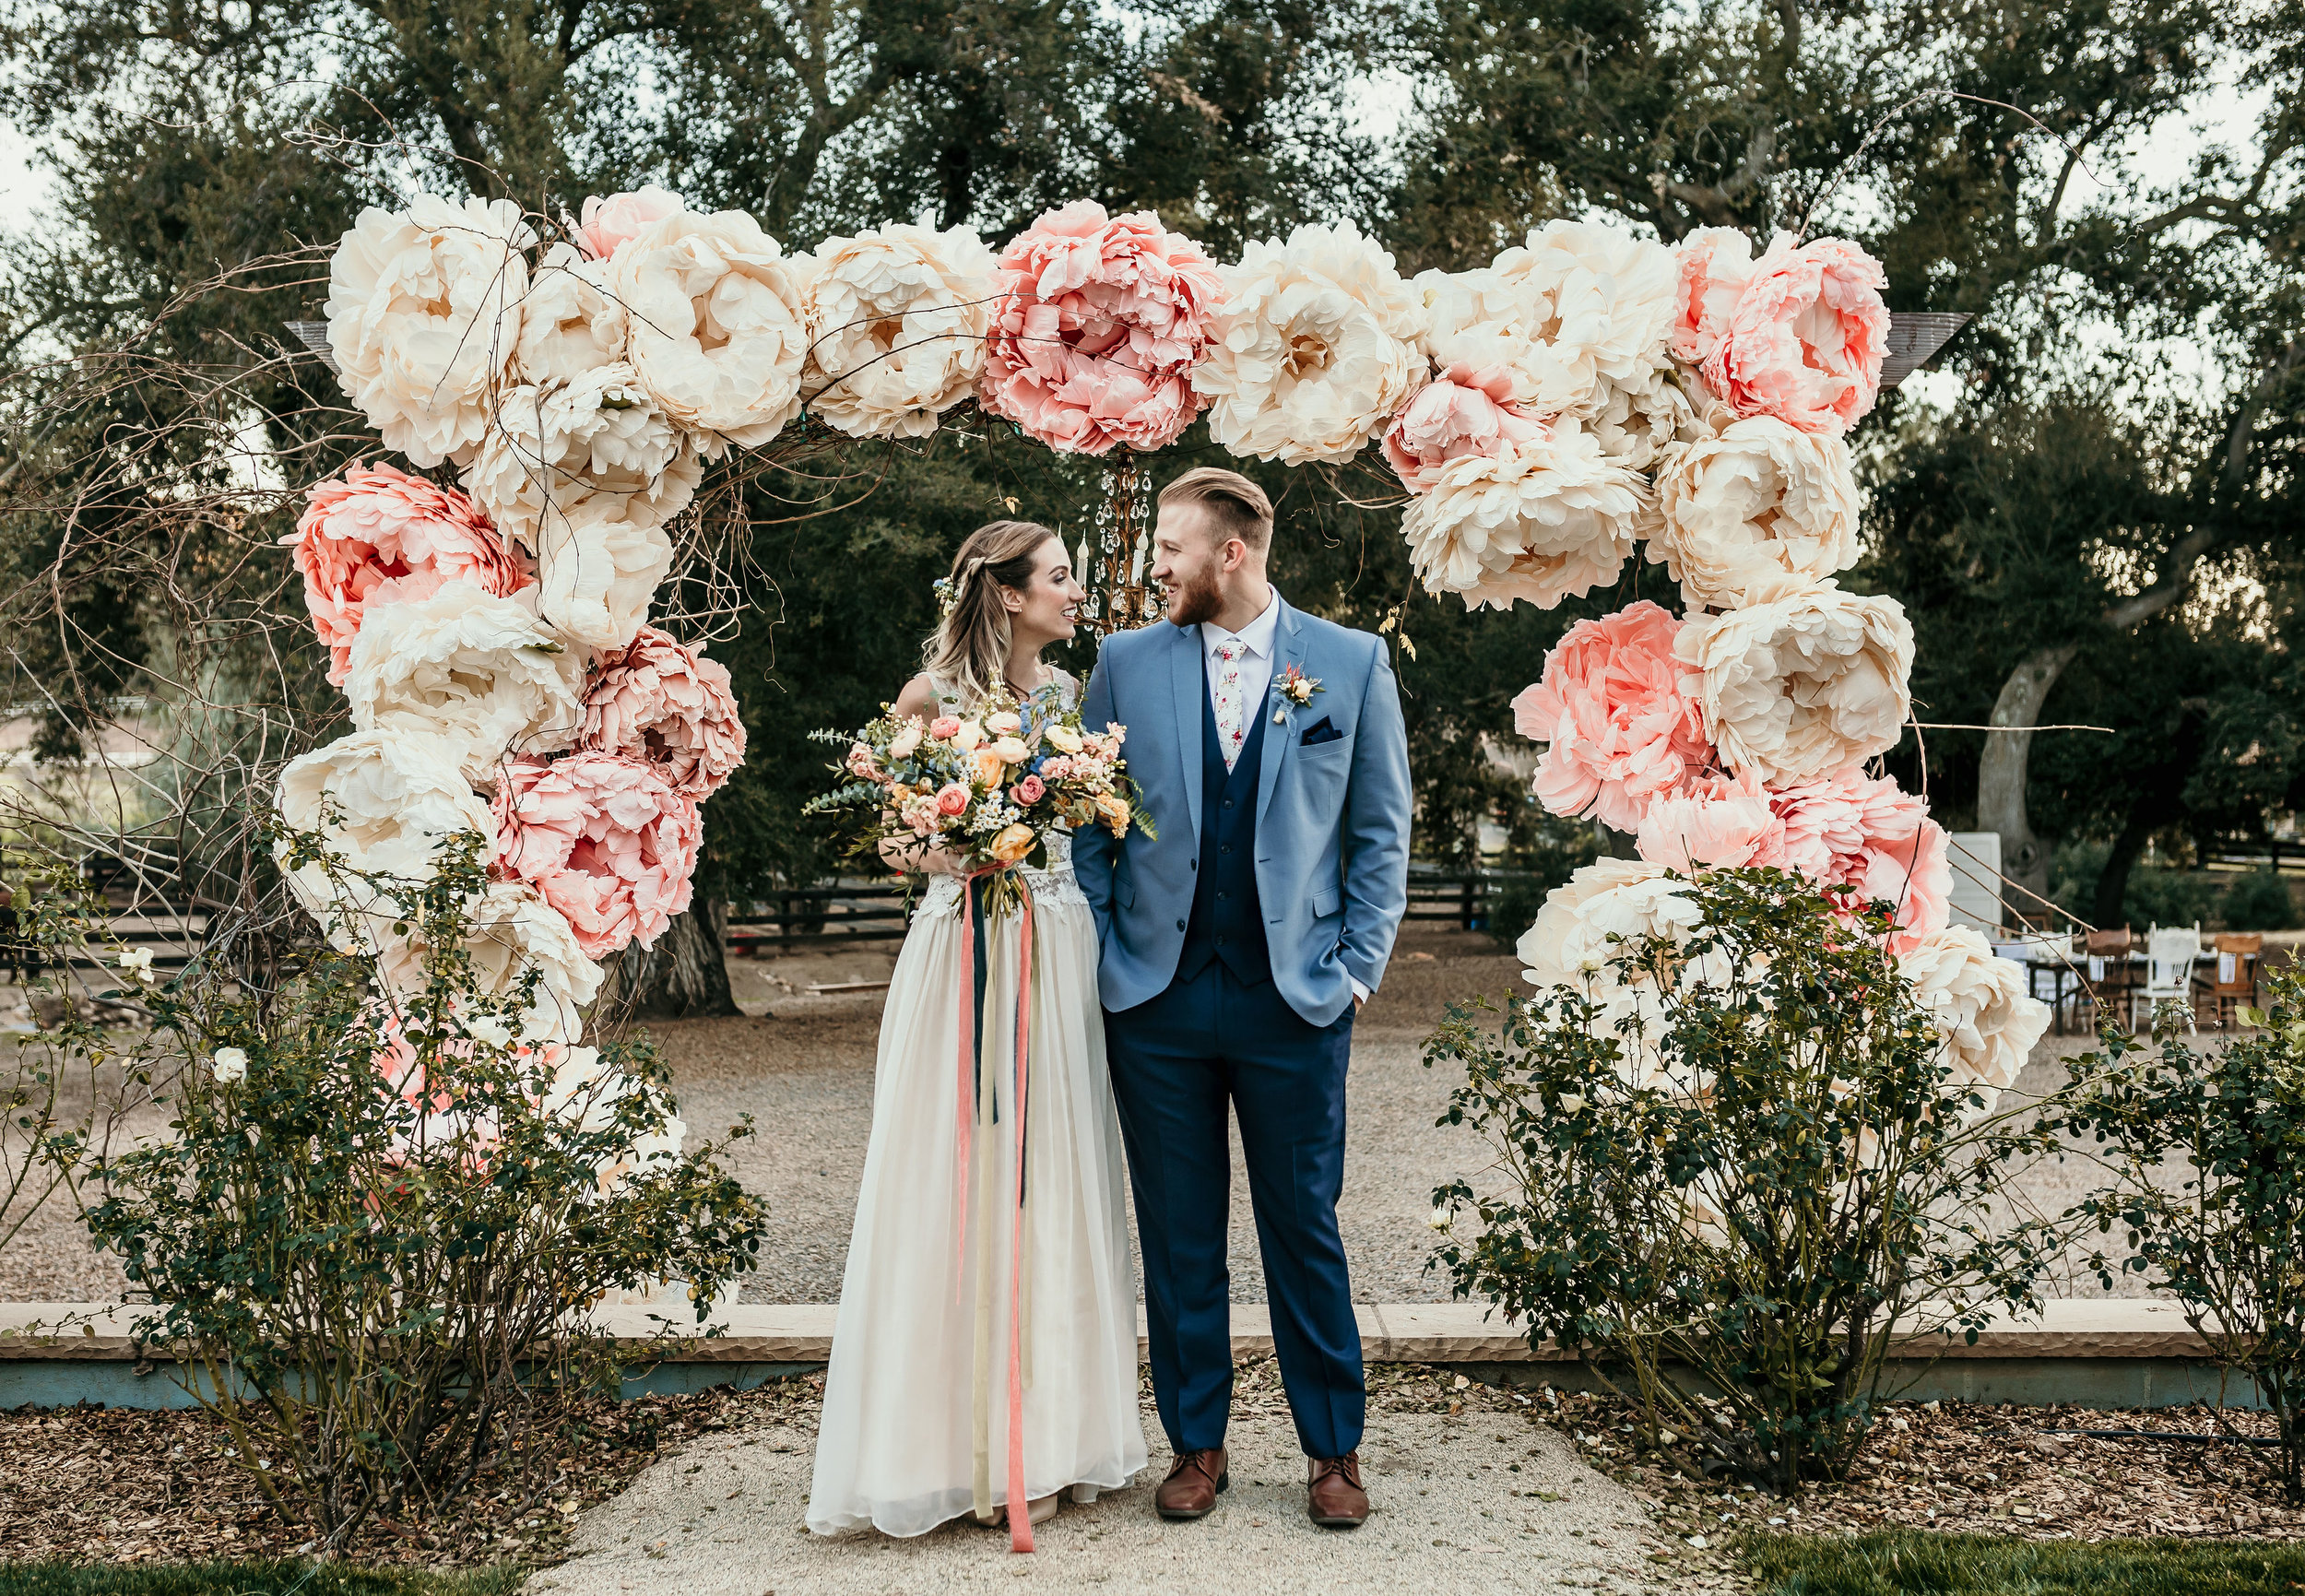 Alice in Wonderland bride and her groom standing in front of the large wooden arch at Chateau Adare in Murrieta. The arch is decorated with large handmade paper pink and white peonies.